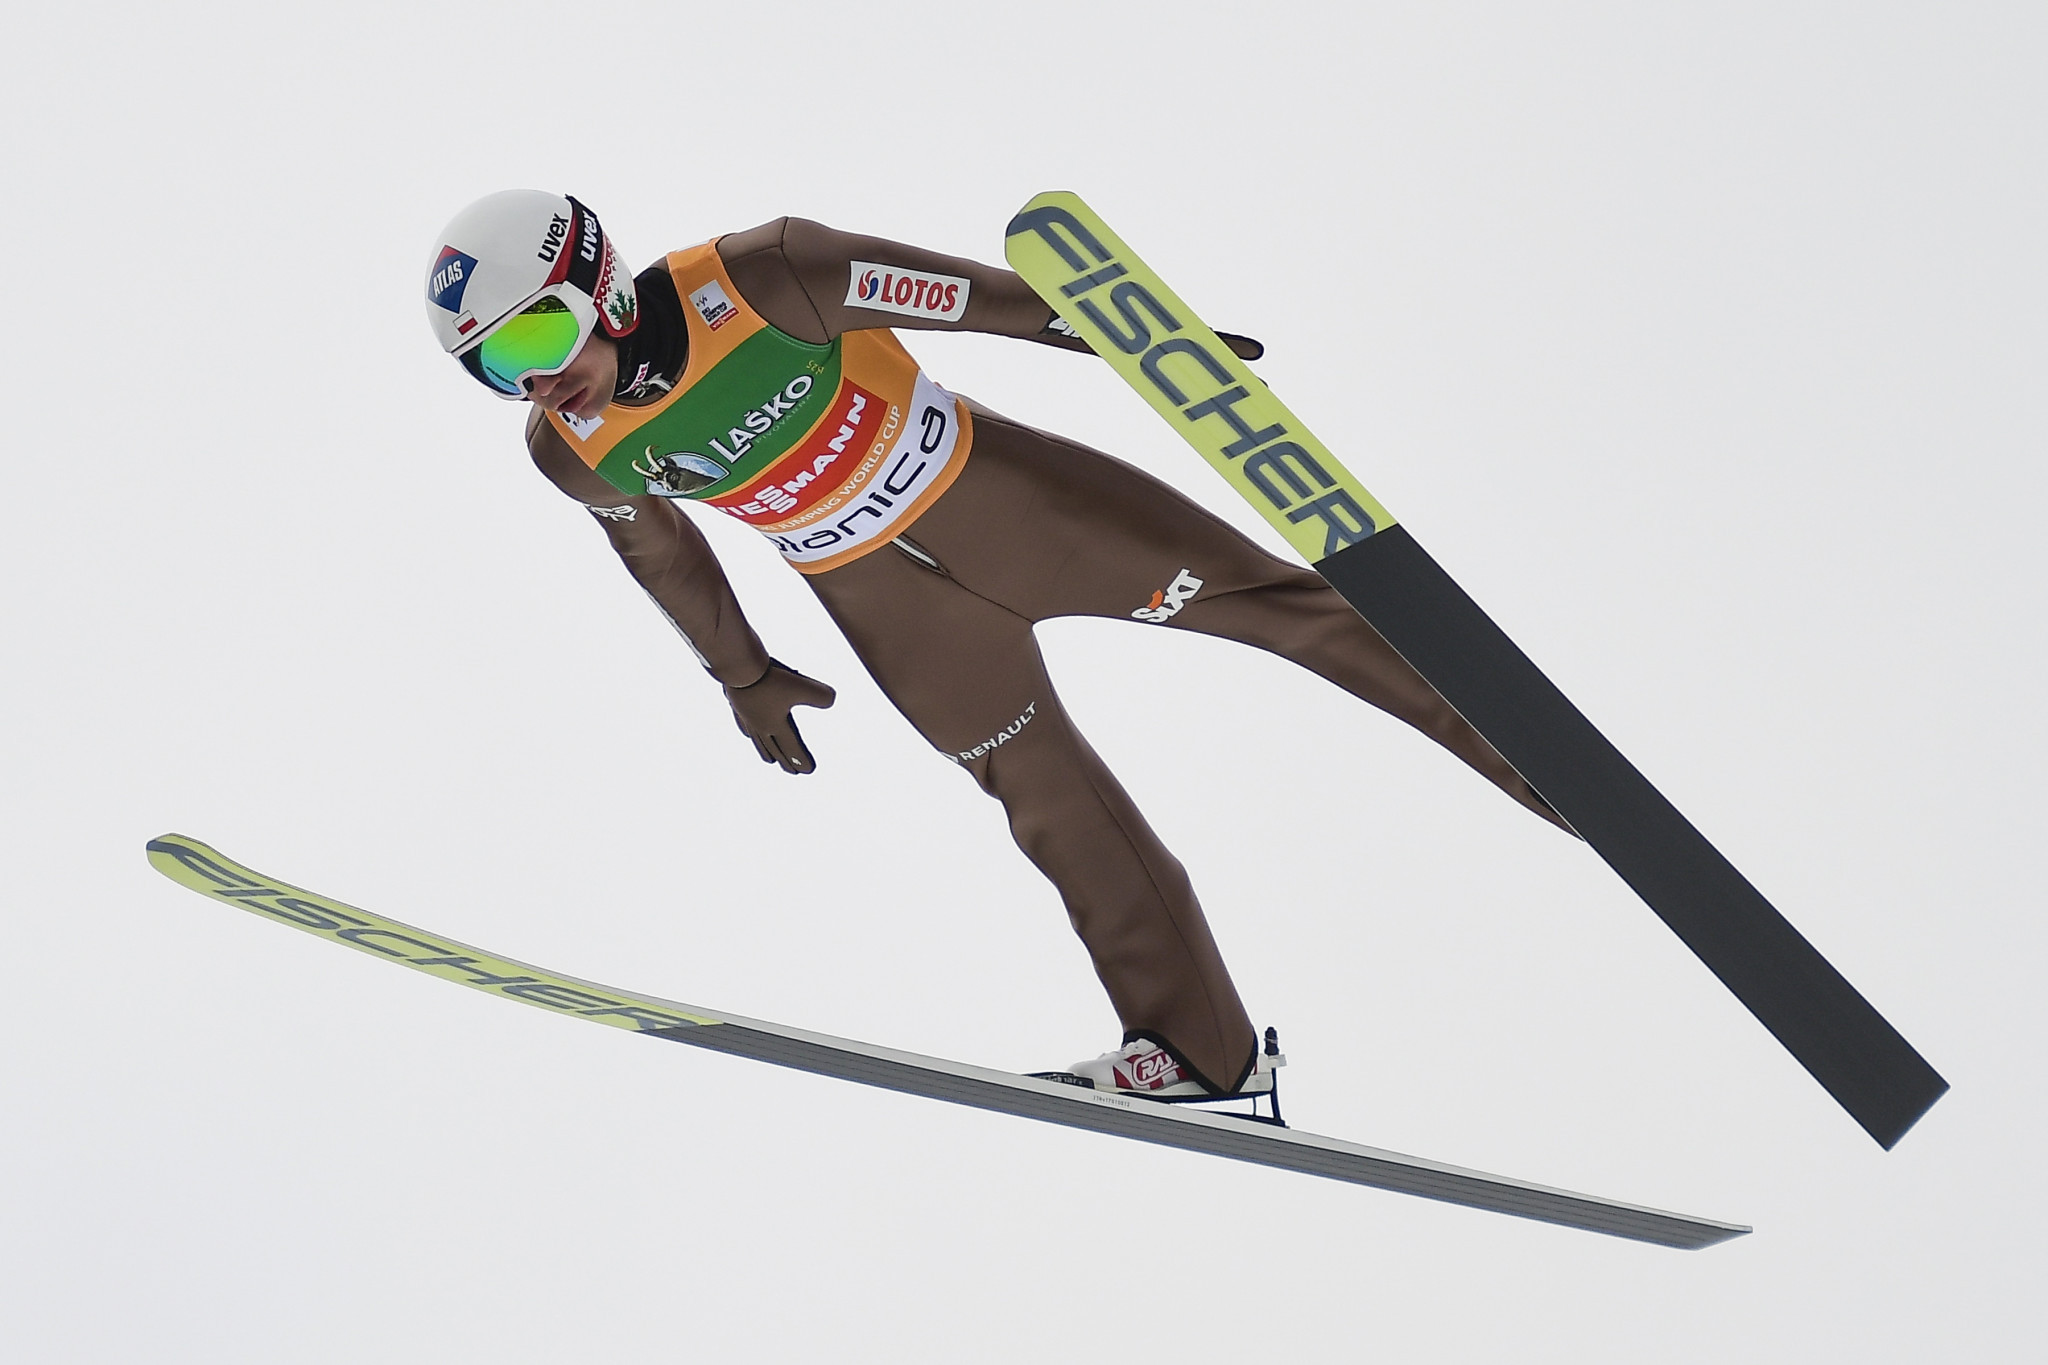 Poland win home team gold at Ski Jumping World Cup in Wisla